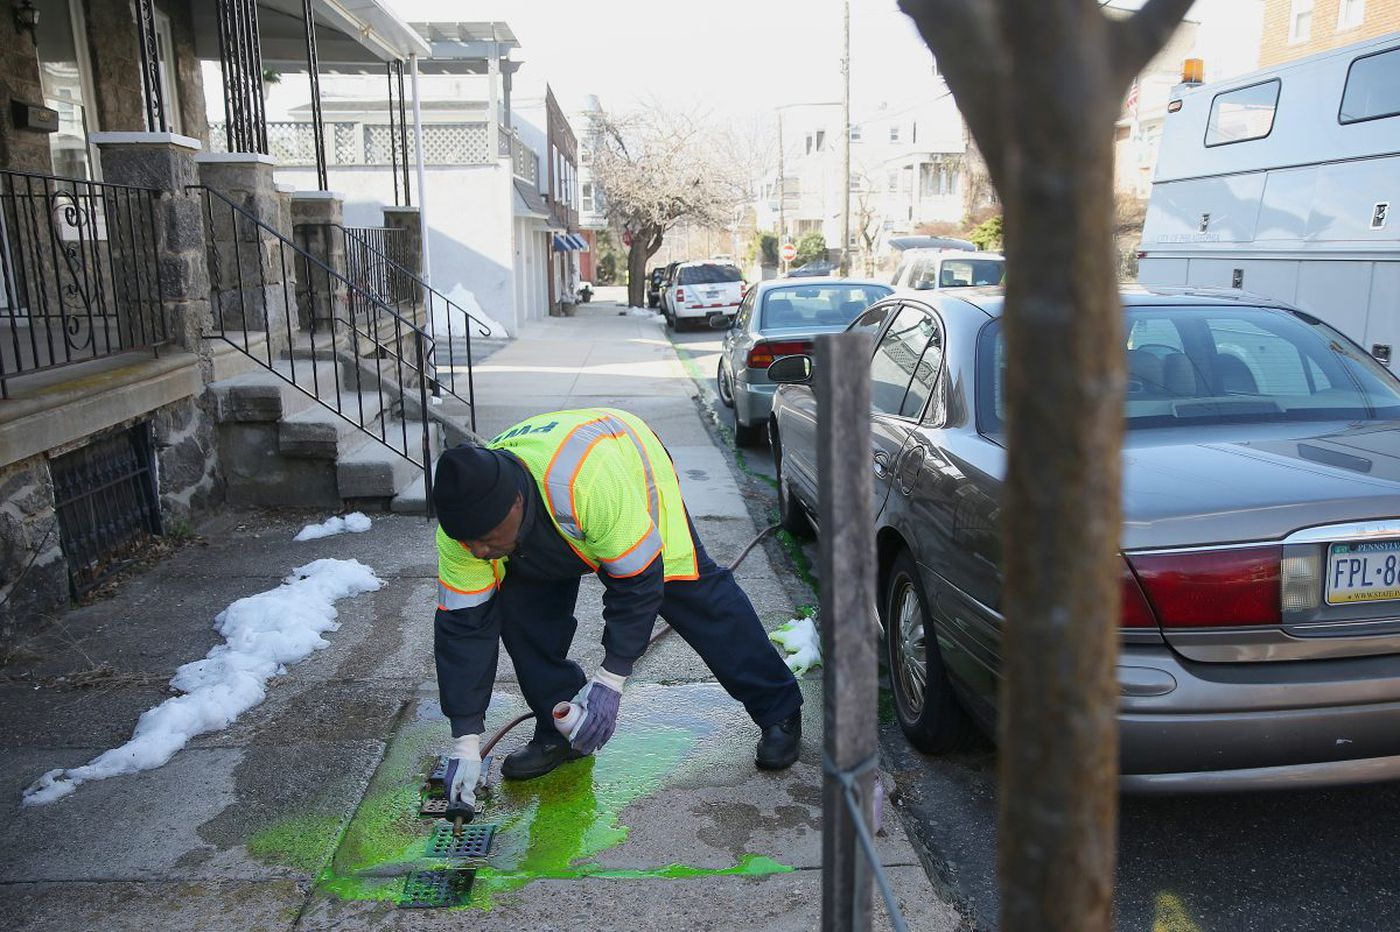 At some Philly homes, toilets get flushed into the city's drinking water source. The underground detectives are on the case